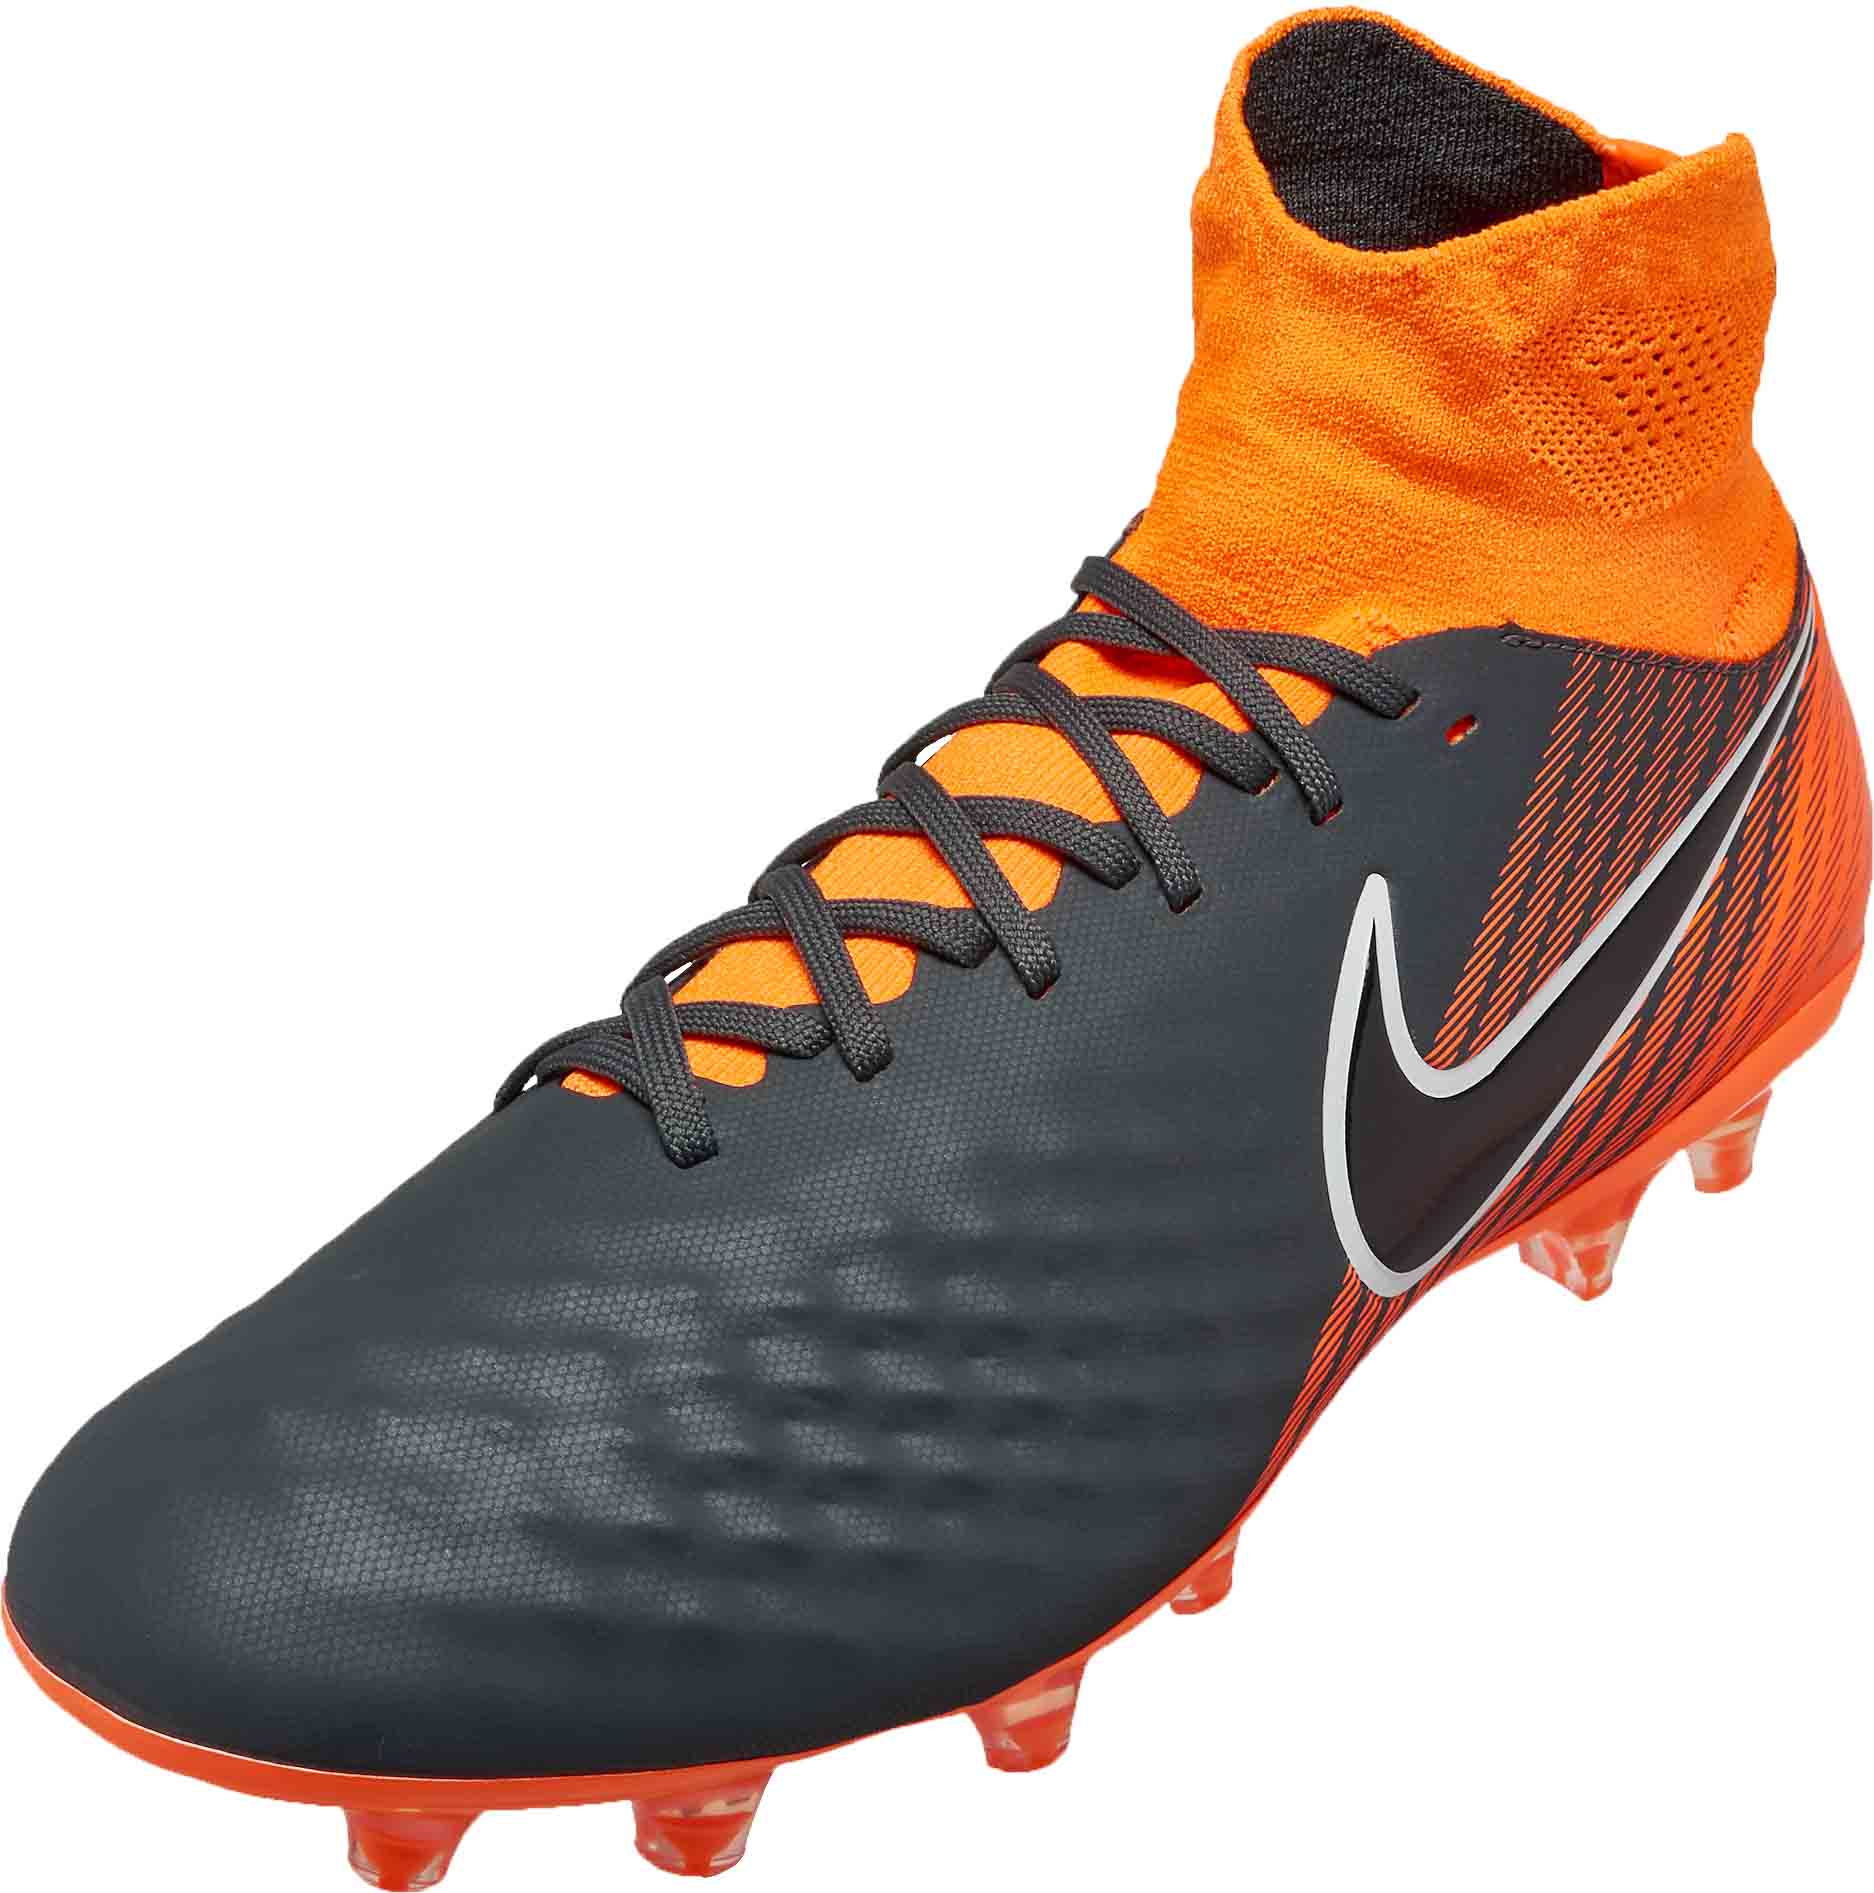 nike magista obra 2 pro df fg dark grey total orange soccerpro. Black Bedroom Furniture Sets. Home Design Ideas